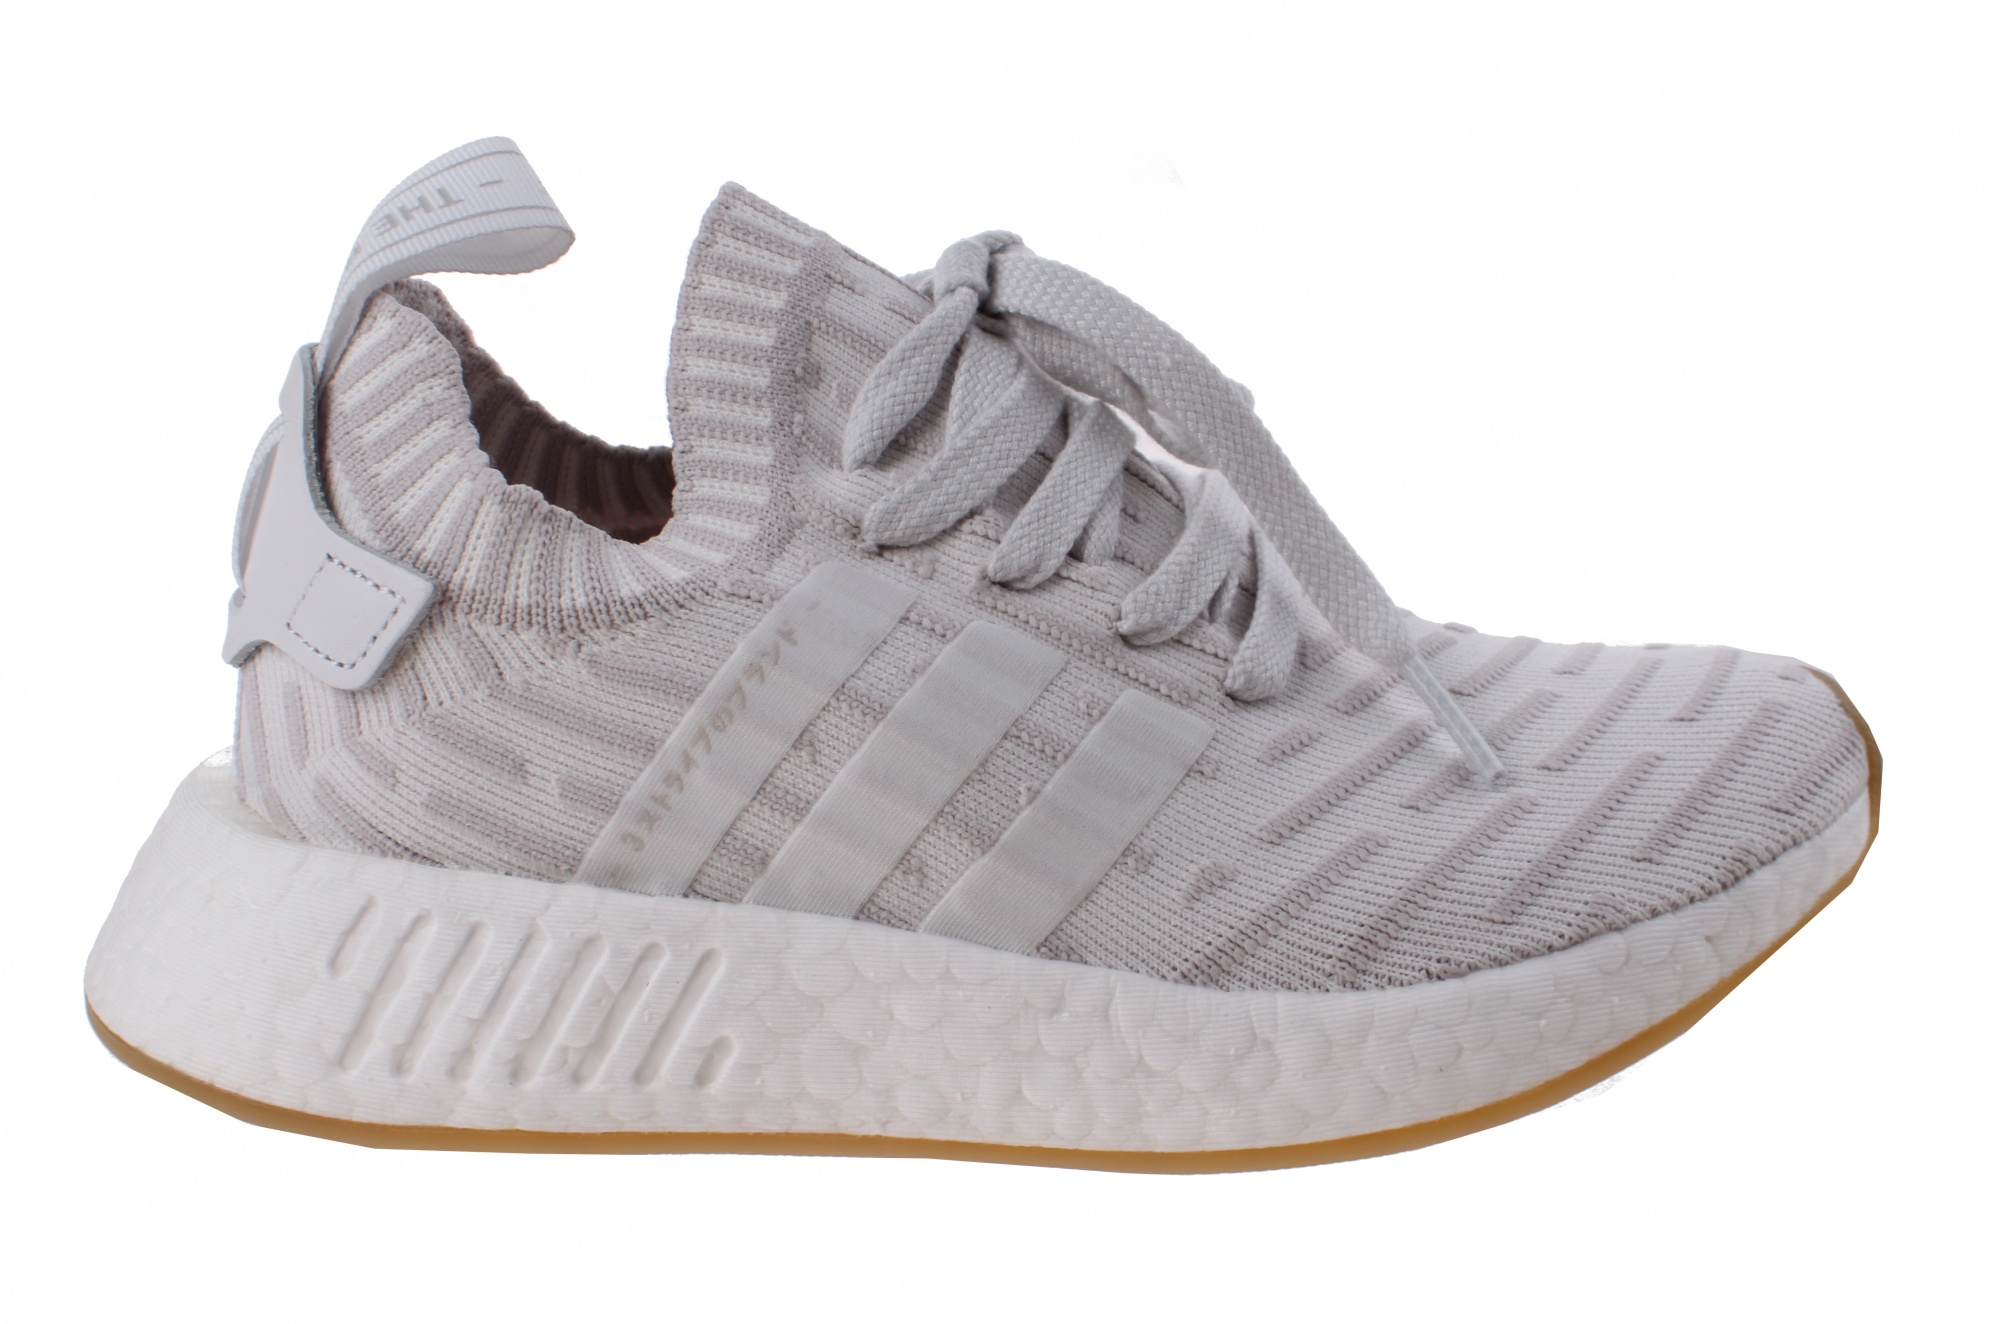 sale retailer 831e8 b7268 adidas sneakers NMD R2 Primeknit ladies gray - Internet ...